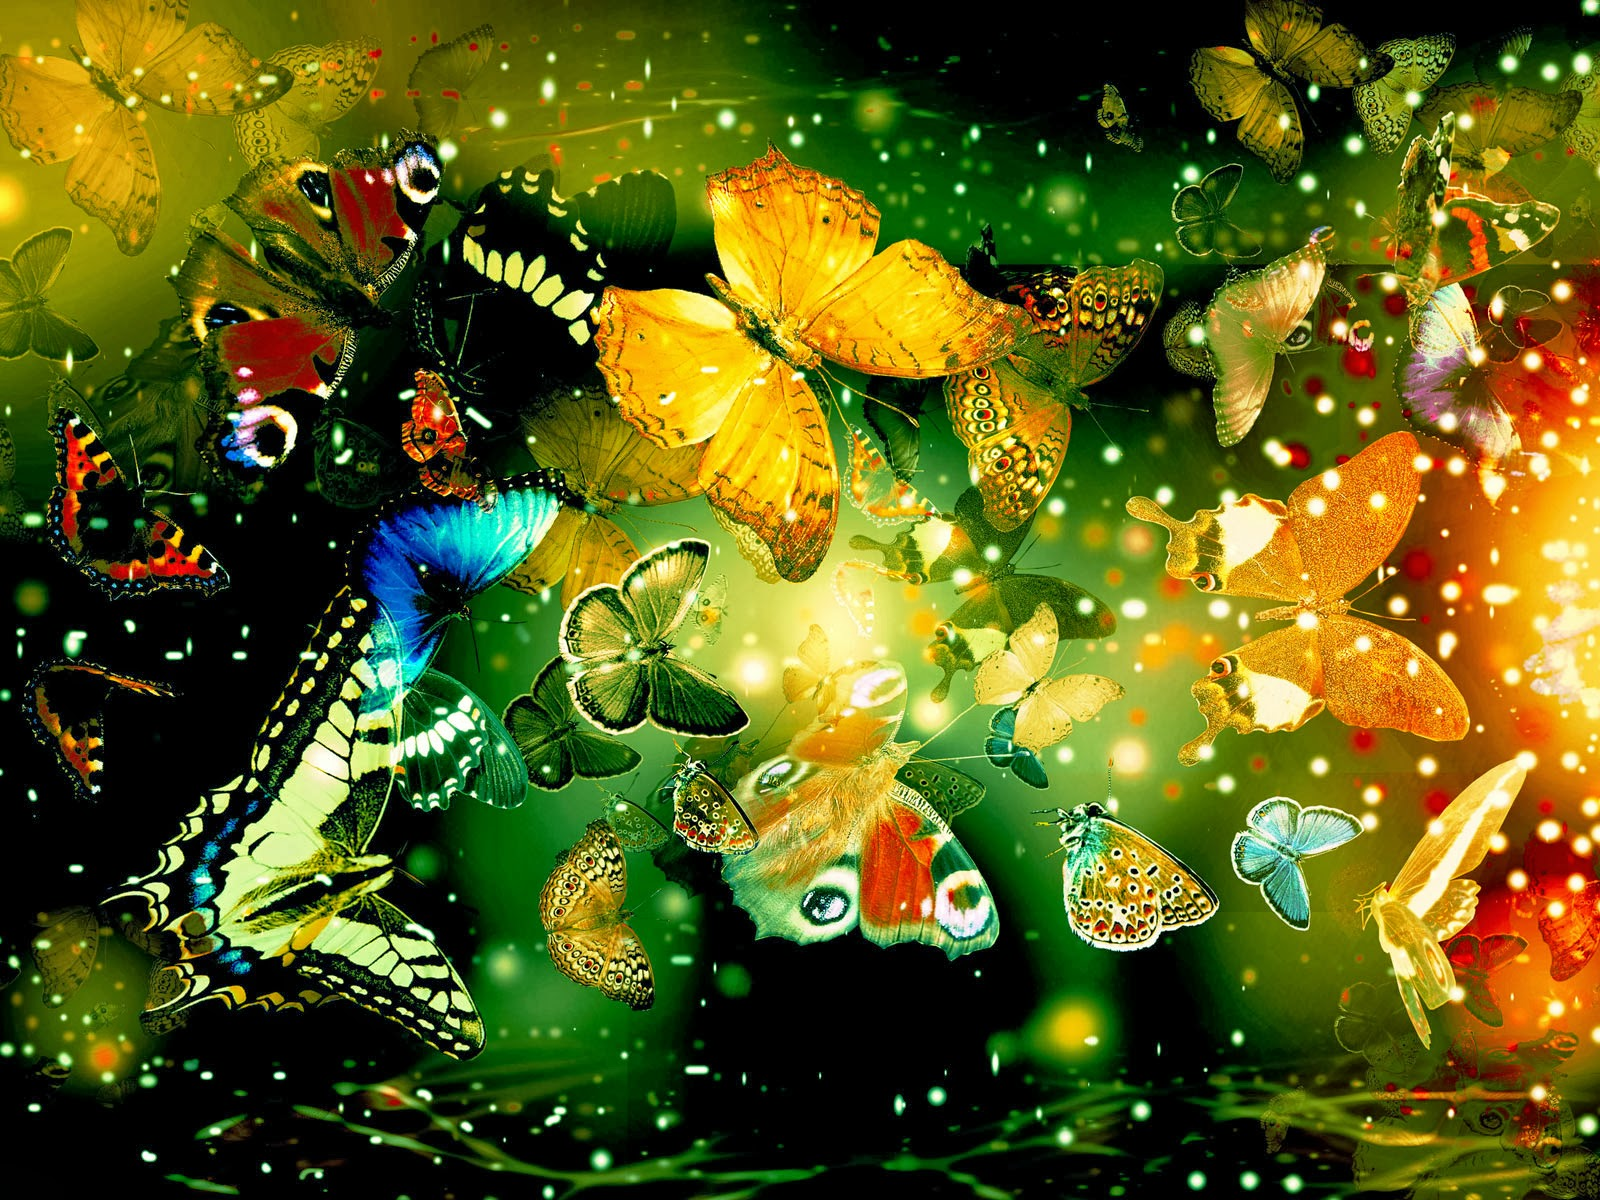 Computer Wallpaper New Good Desktop Computer 270 Background